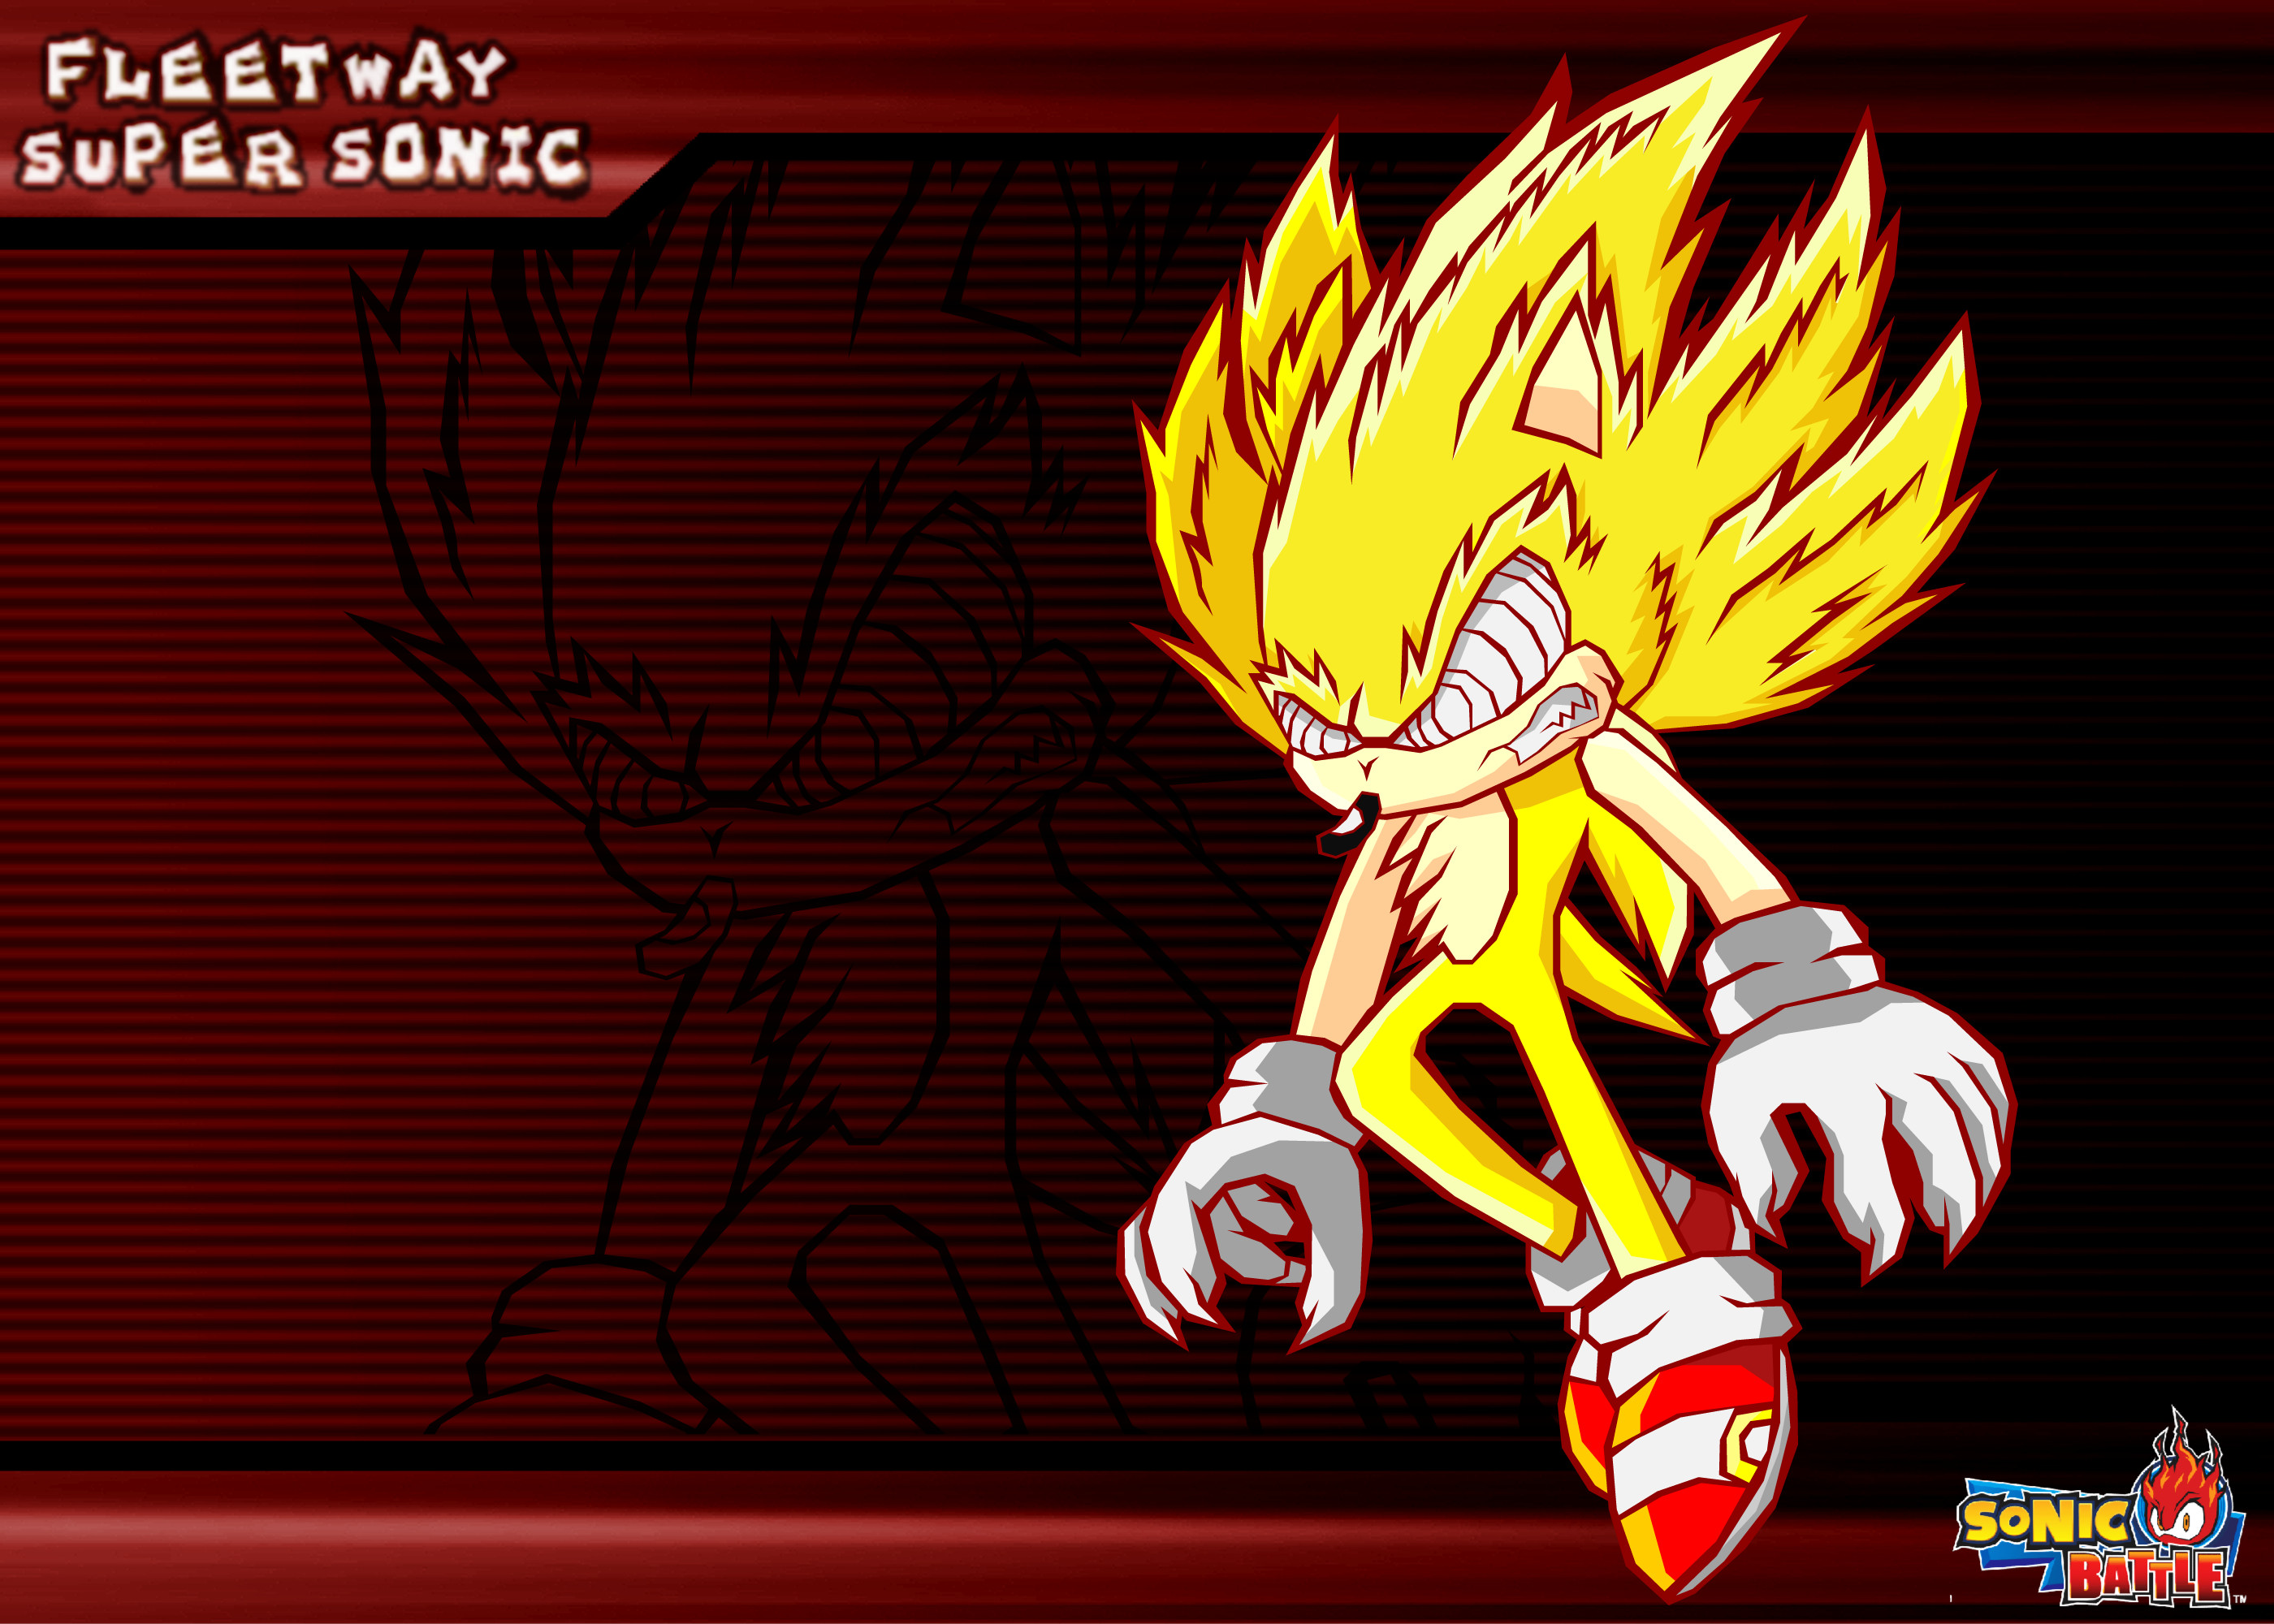 2800x2000 Sonic Wallpaper - Wallpapers Browse Sonic the Hedgehog - Super Sonic...Oh  my gosh.